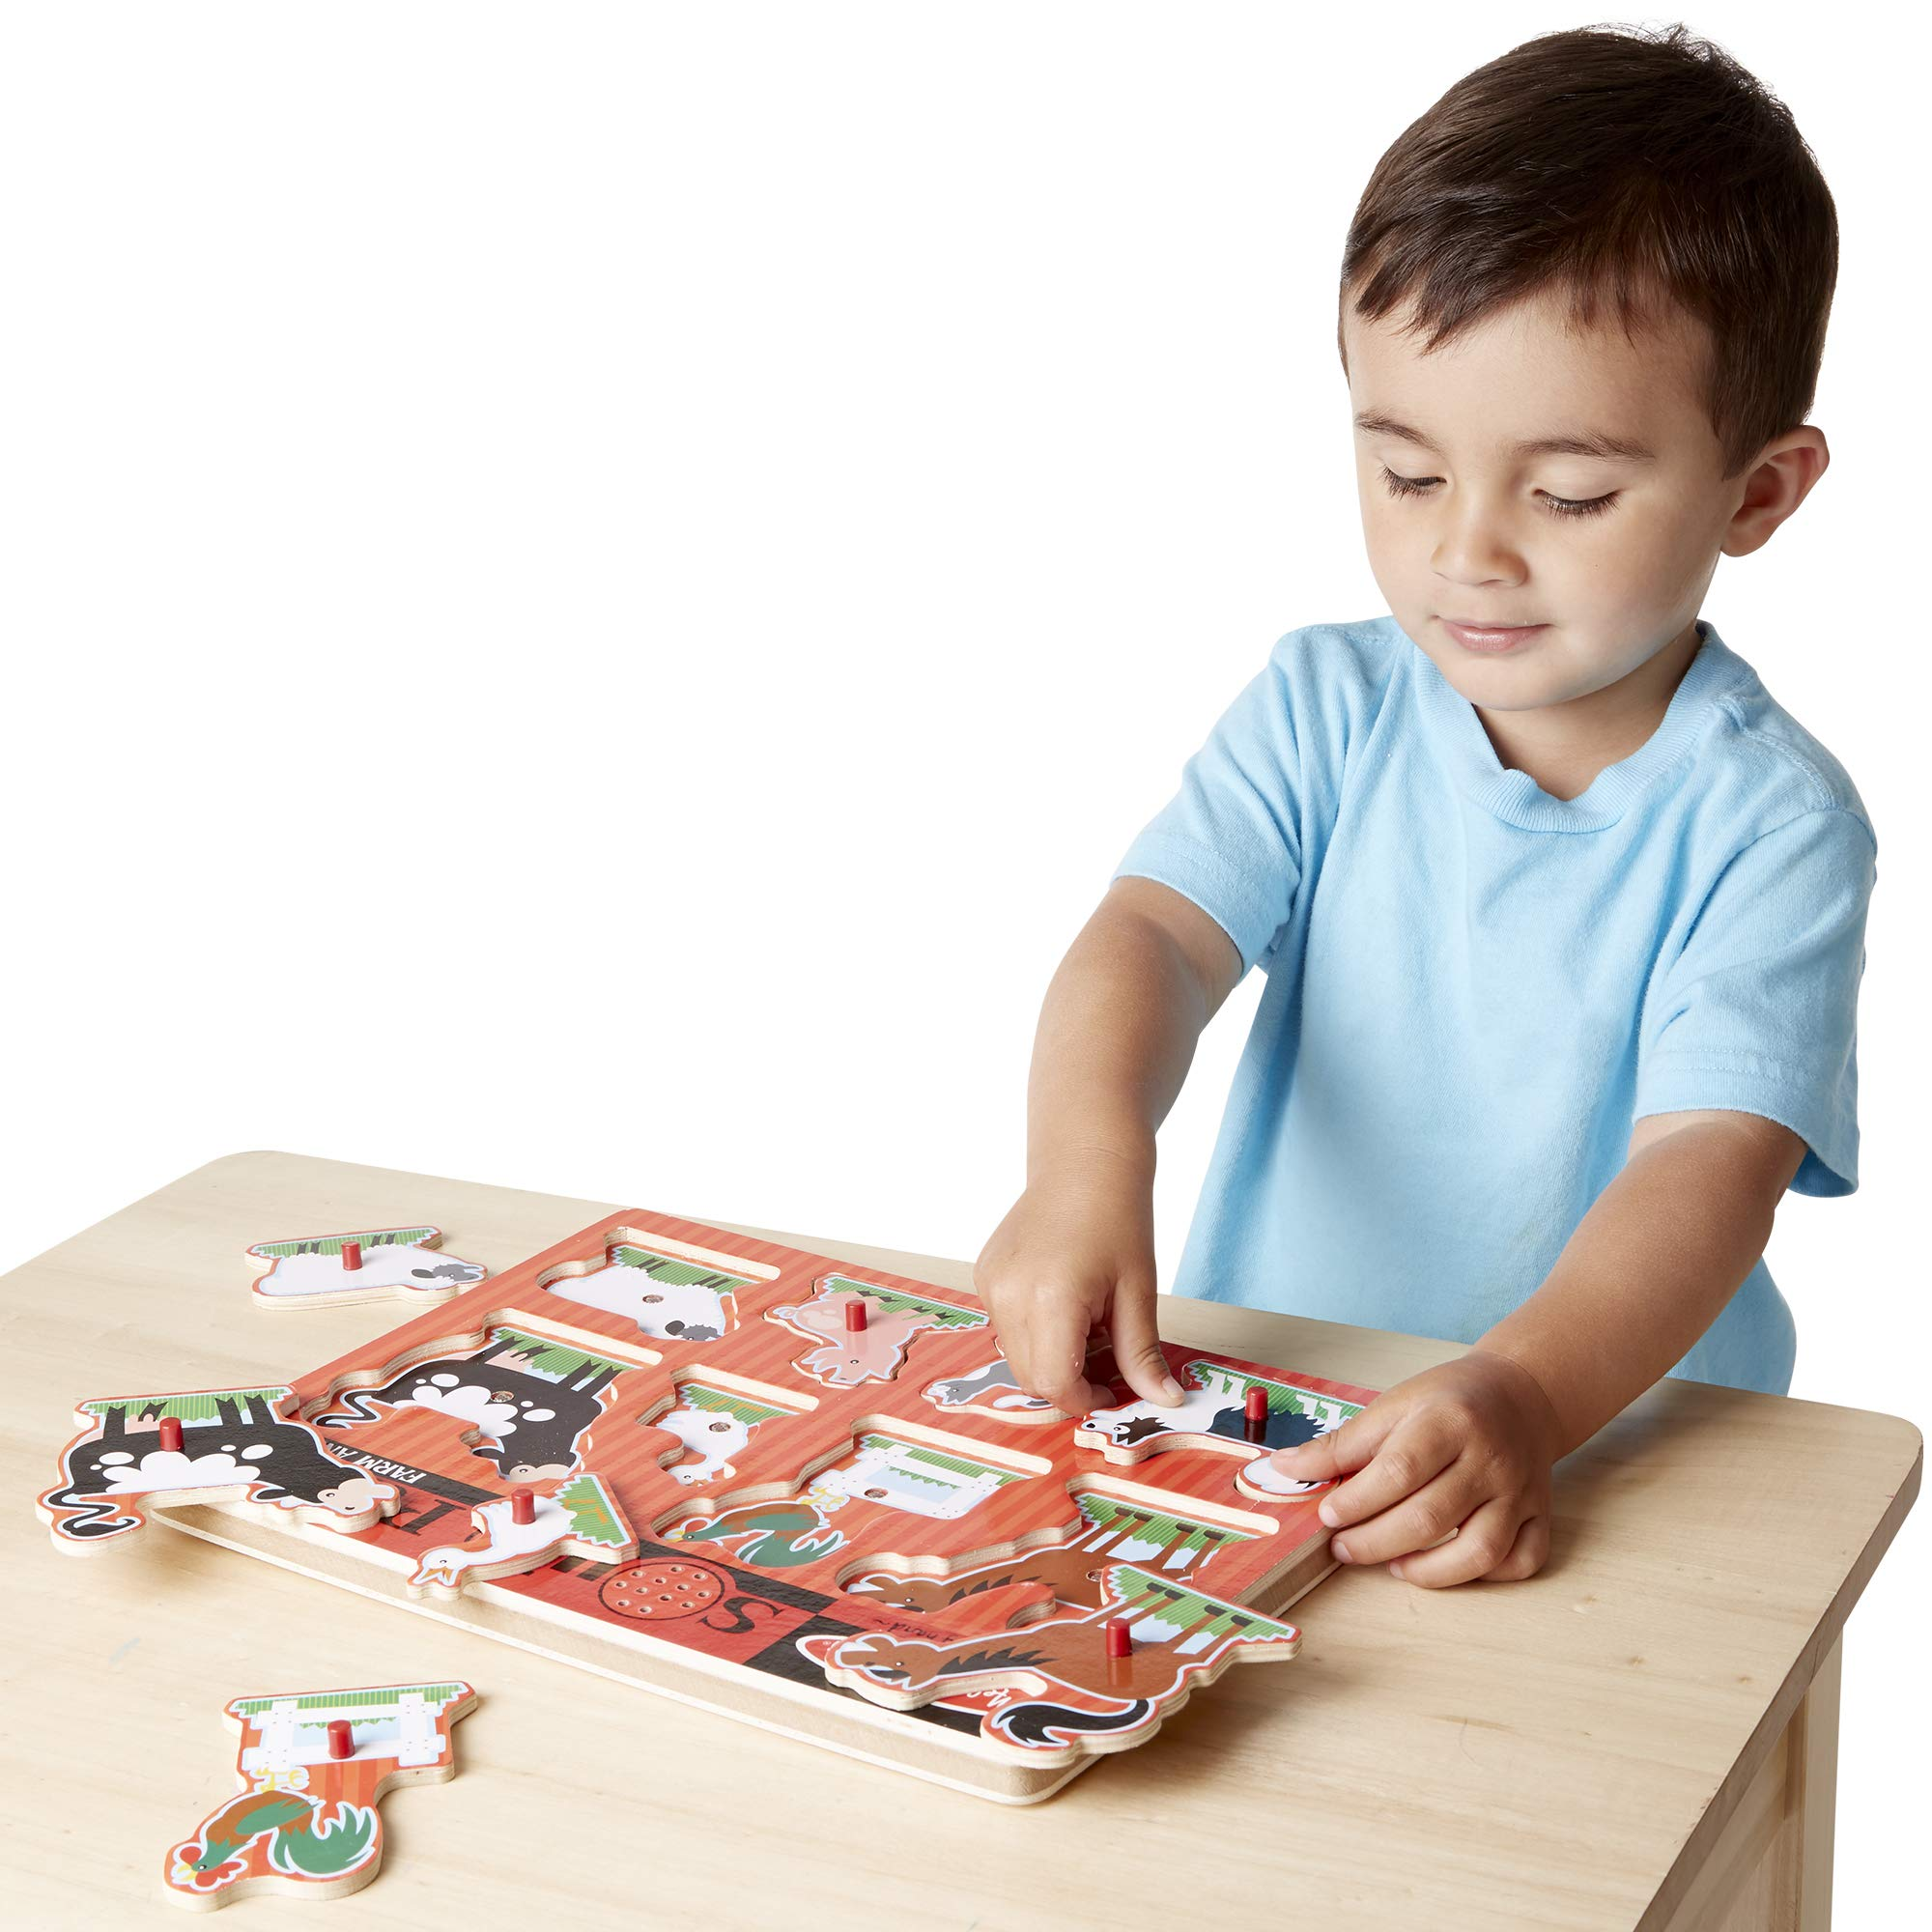 Melissa & Doug Farm Animals Sound Puzzle - Wooden Peg Puzzle With Sound Effects (8 pcs) by Melissa & Doug (Image #2)